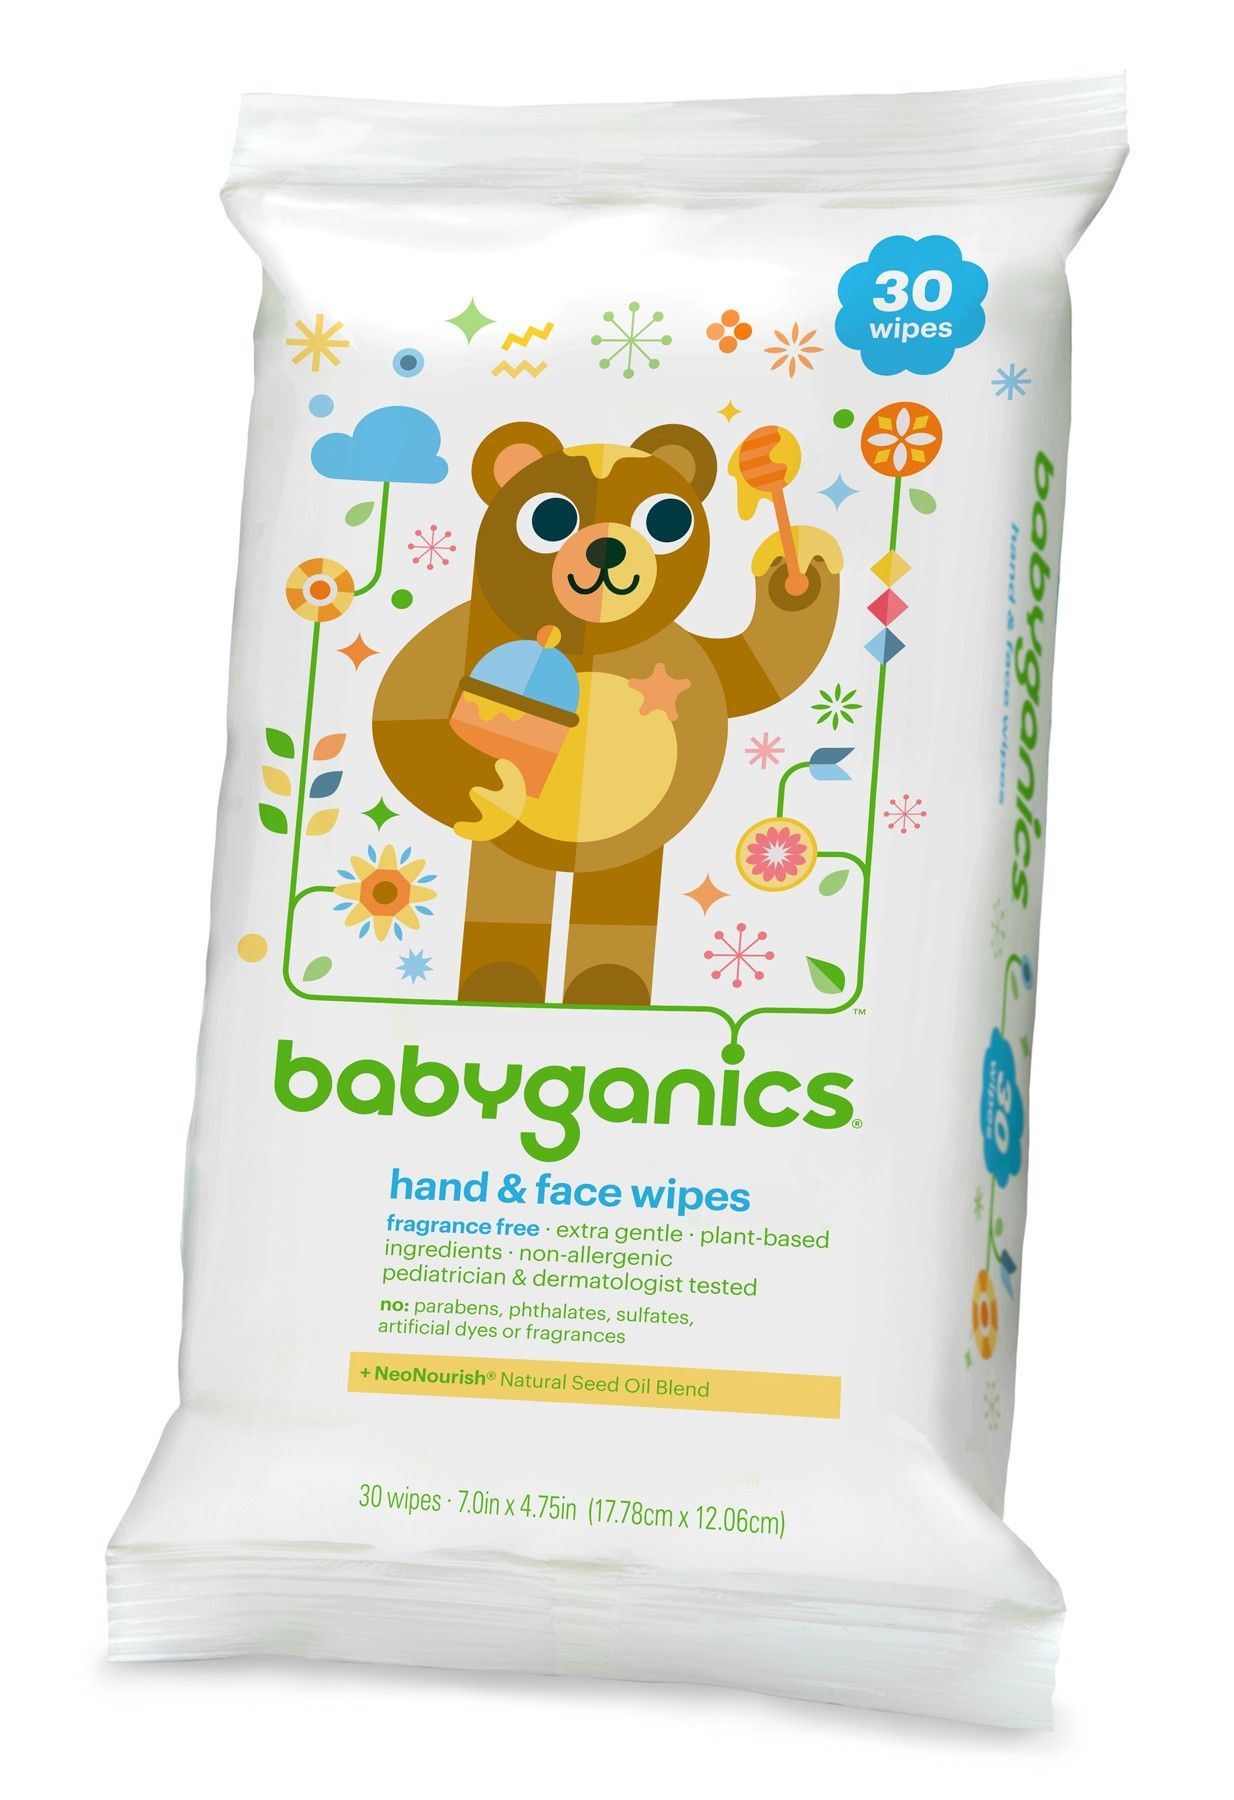 30 Count Fragrance Free Babyganics Hand and Face Wipes